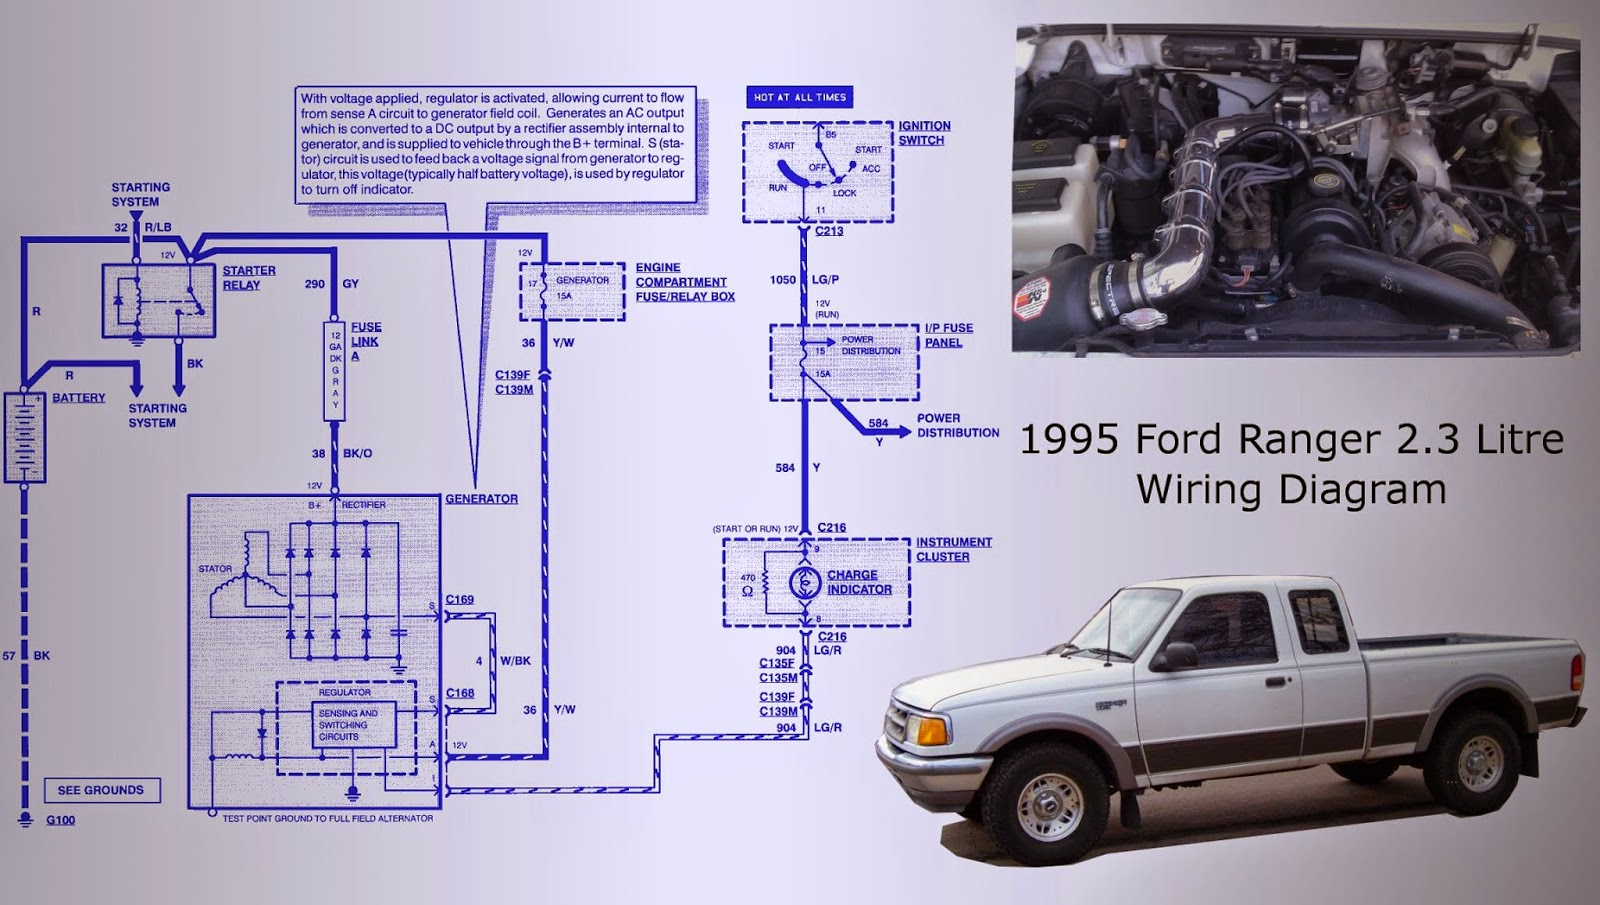 1995 Ford Ranger 23 Litre Wiring Diagram | Auto Wiring